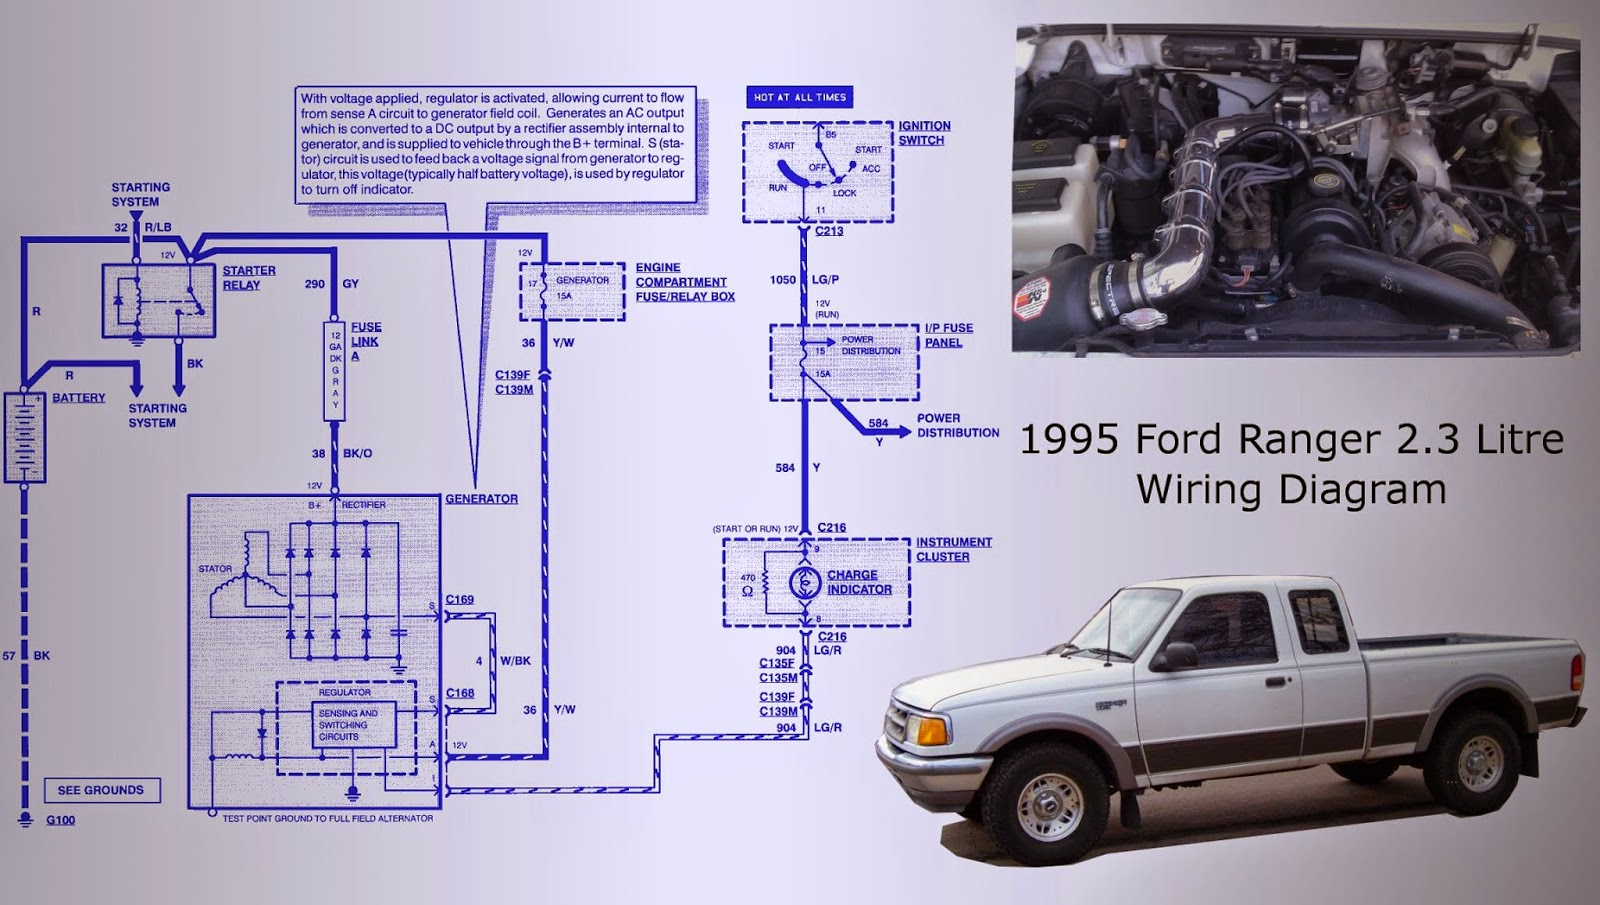 1995 Ford Ranger 23 Litre Wiring Diagram | Auto Wiring